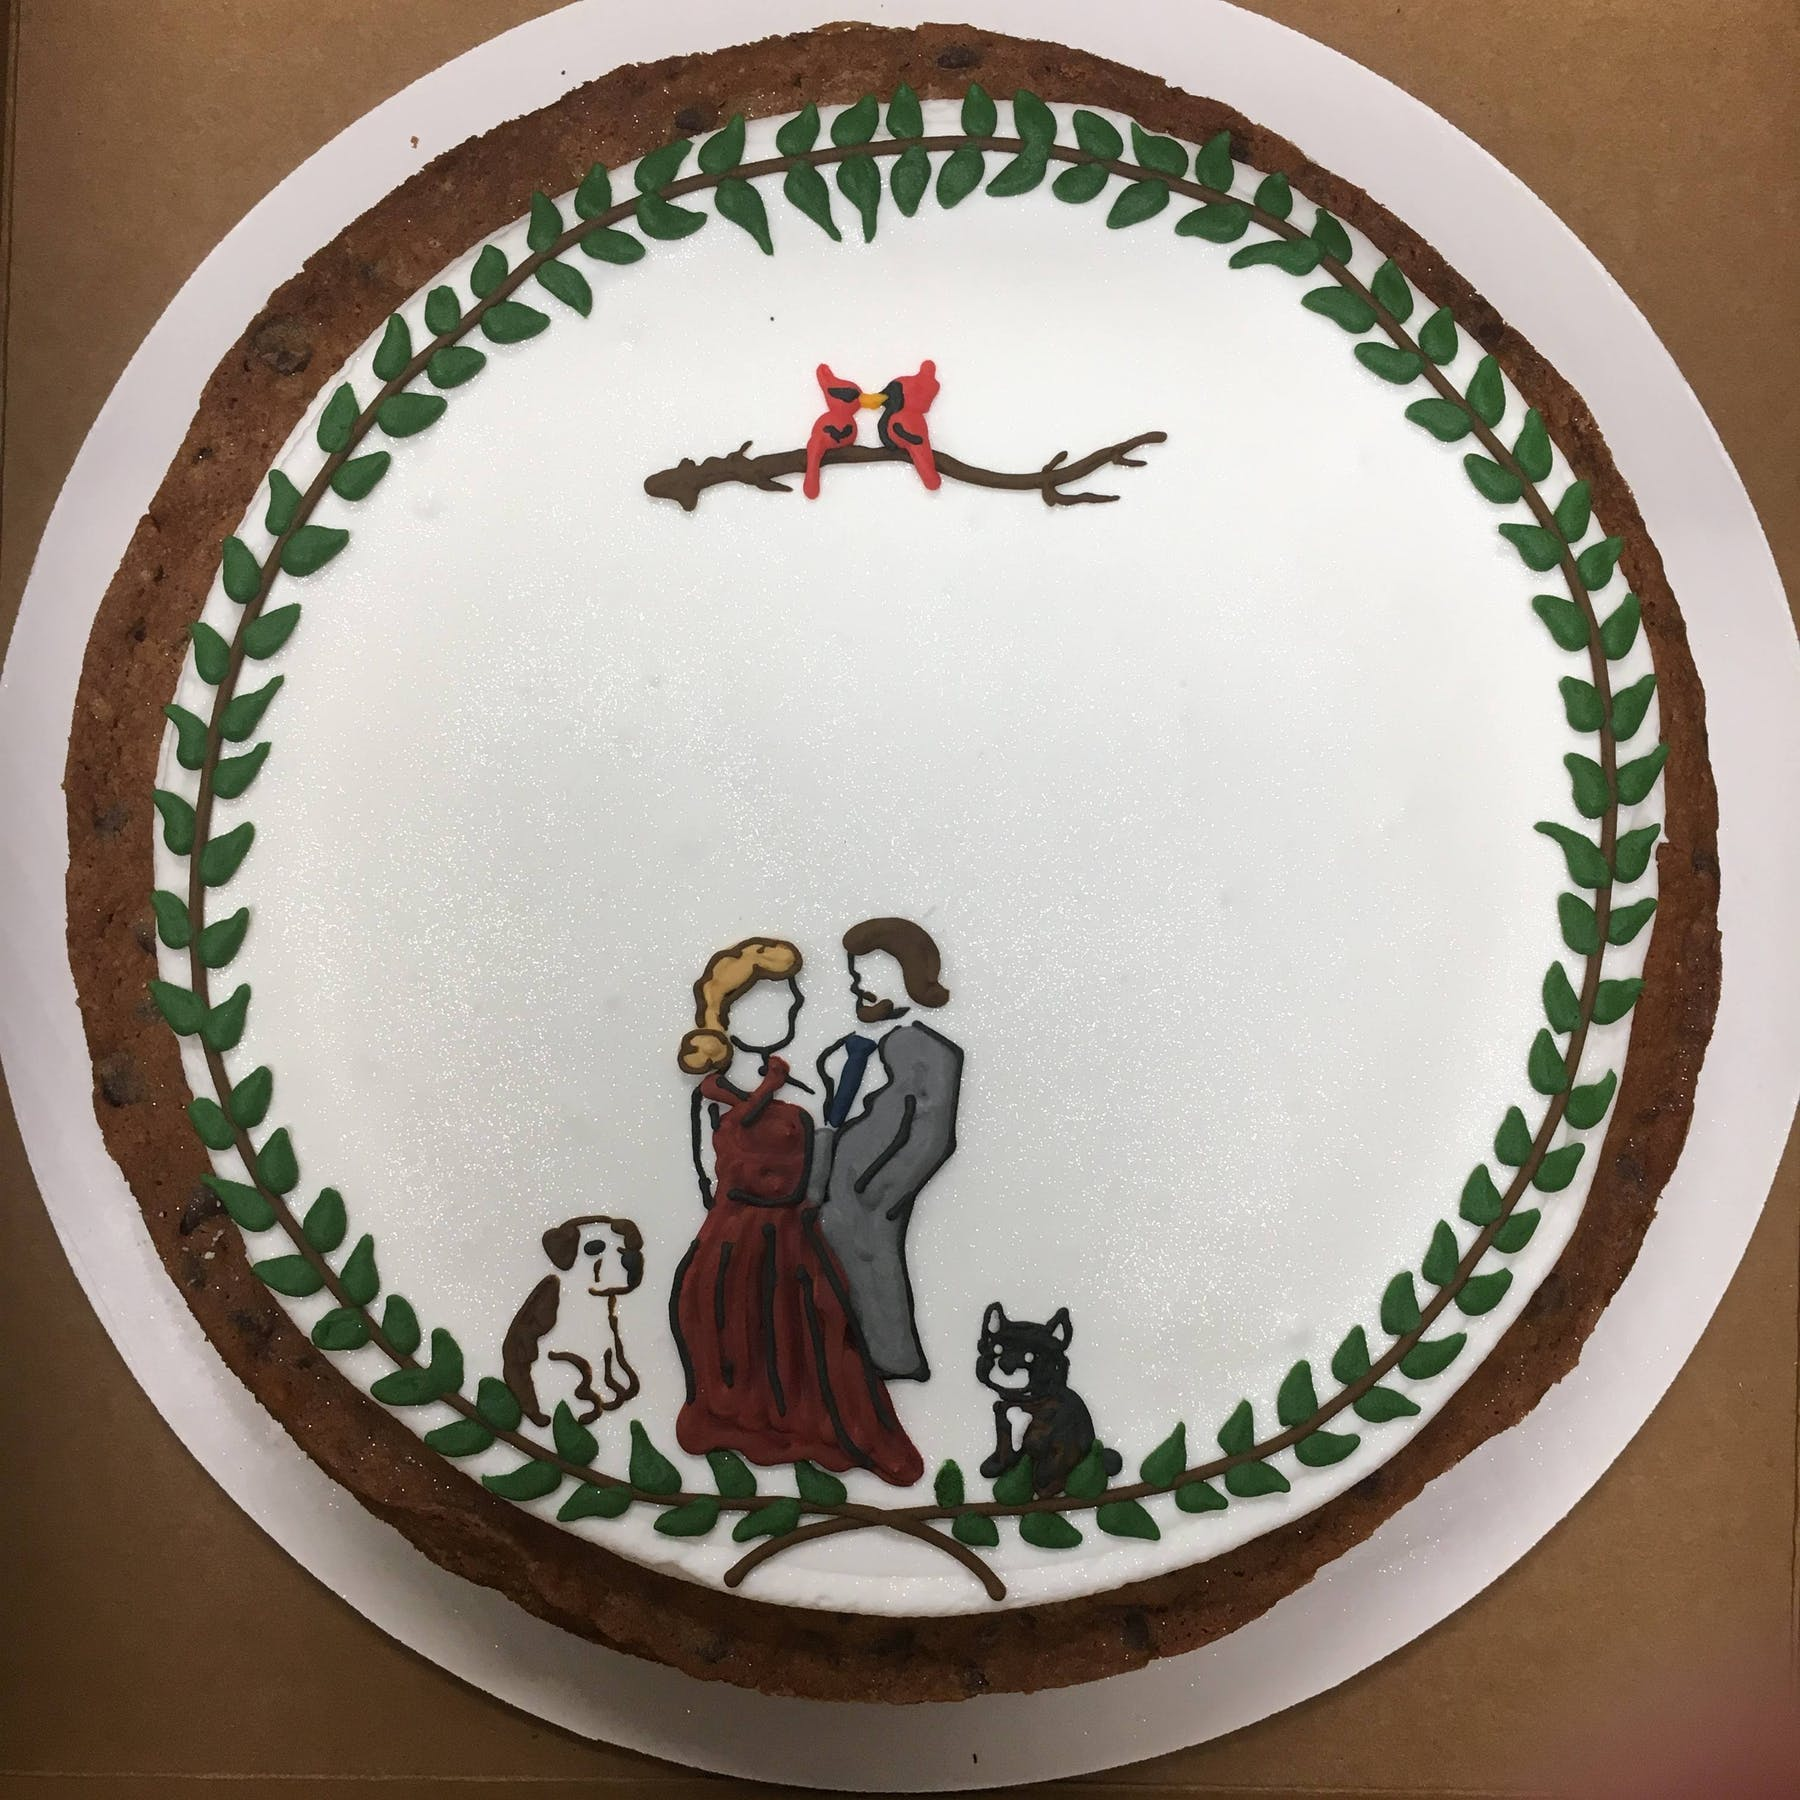 Couple and Pets cake